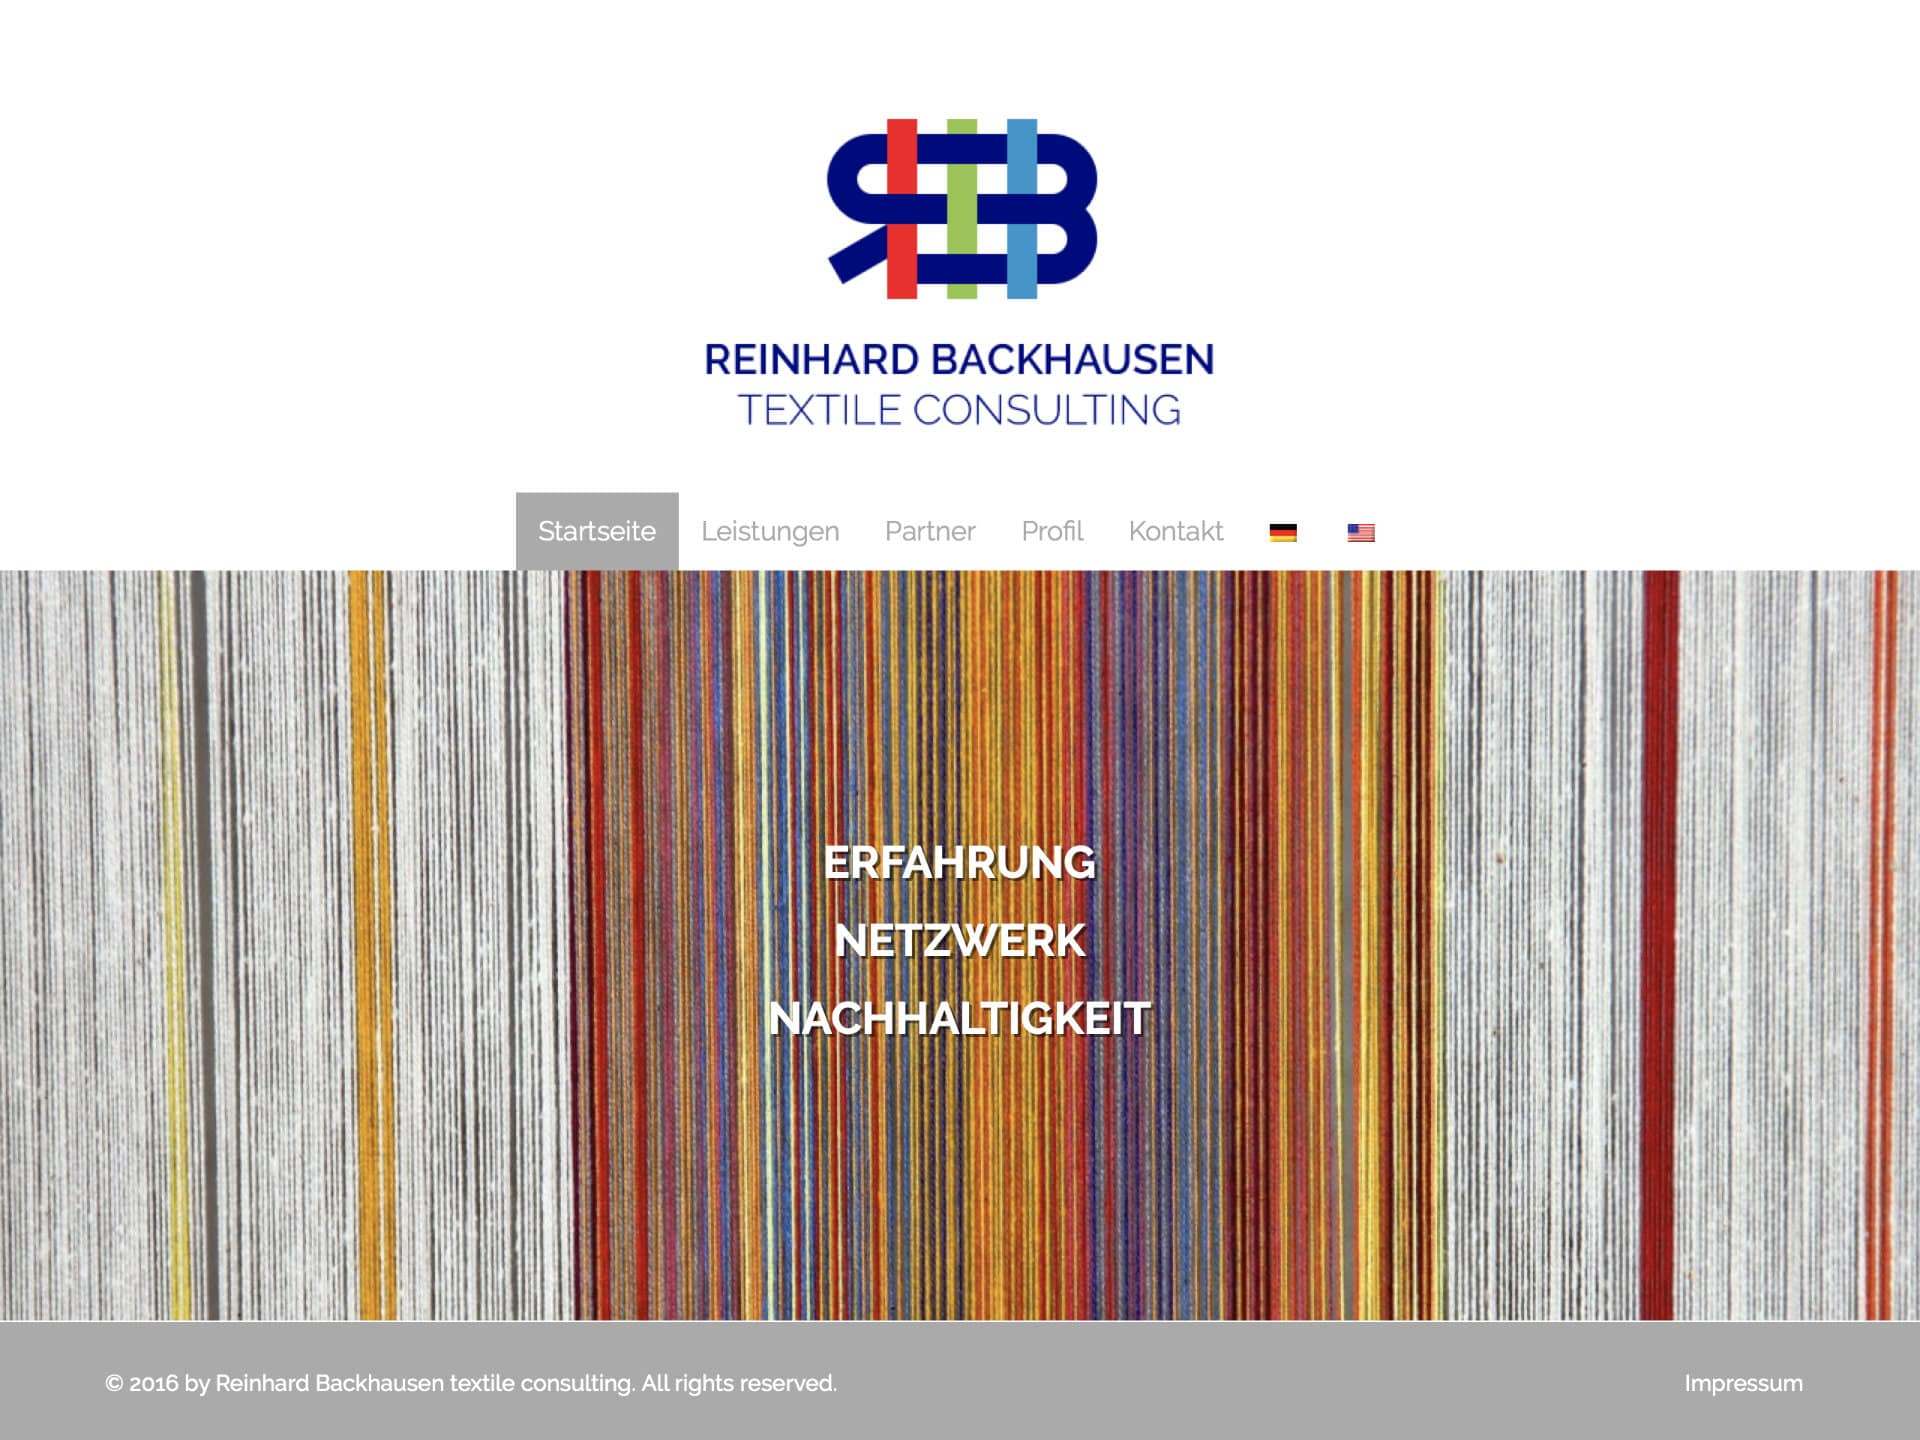 Reinhard Backhausen textile consulting Website